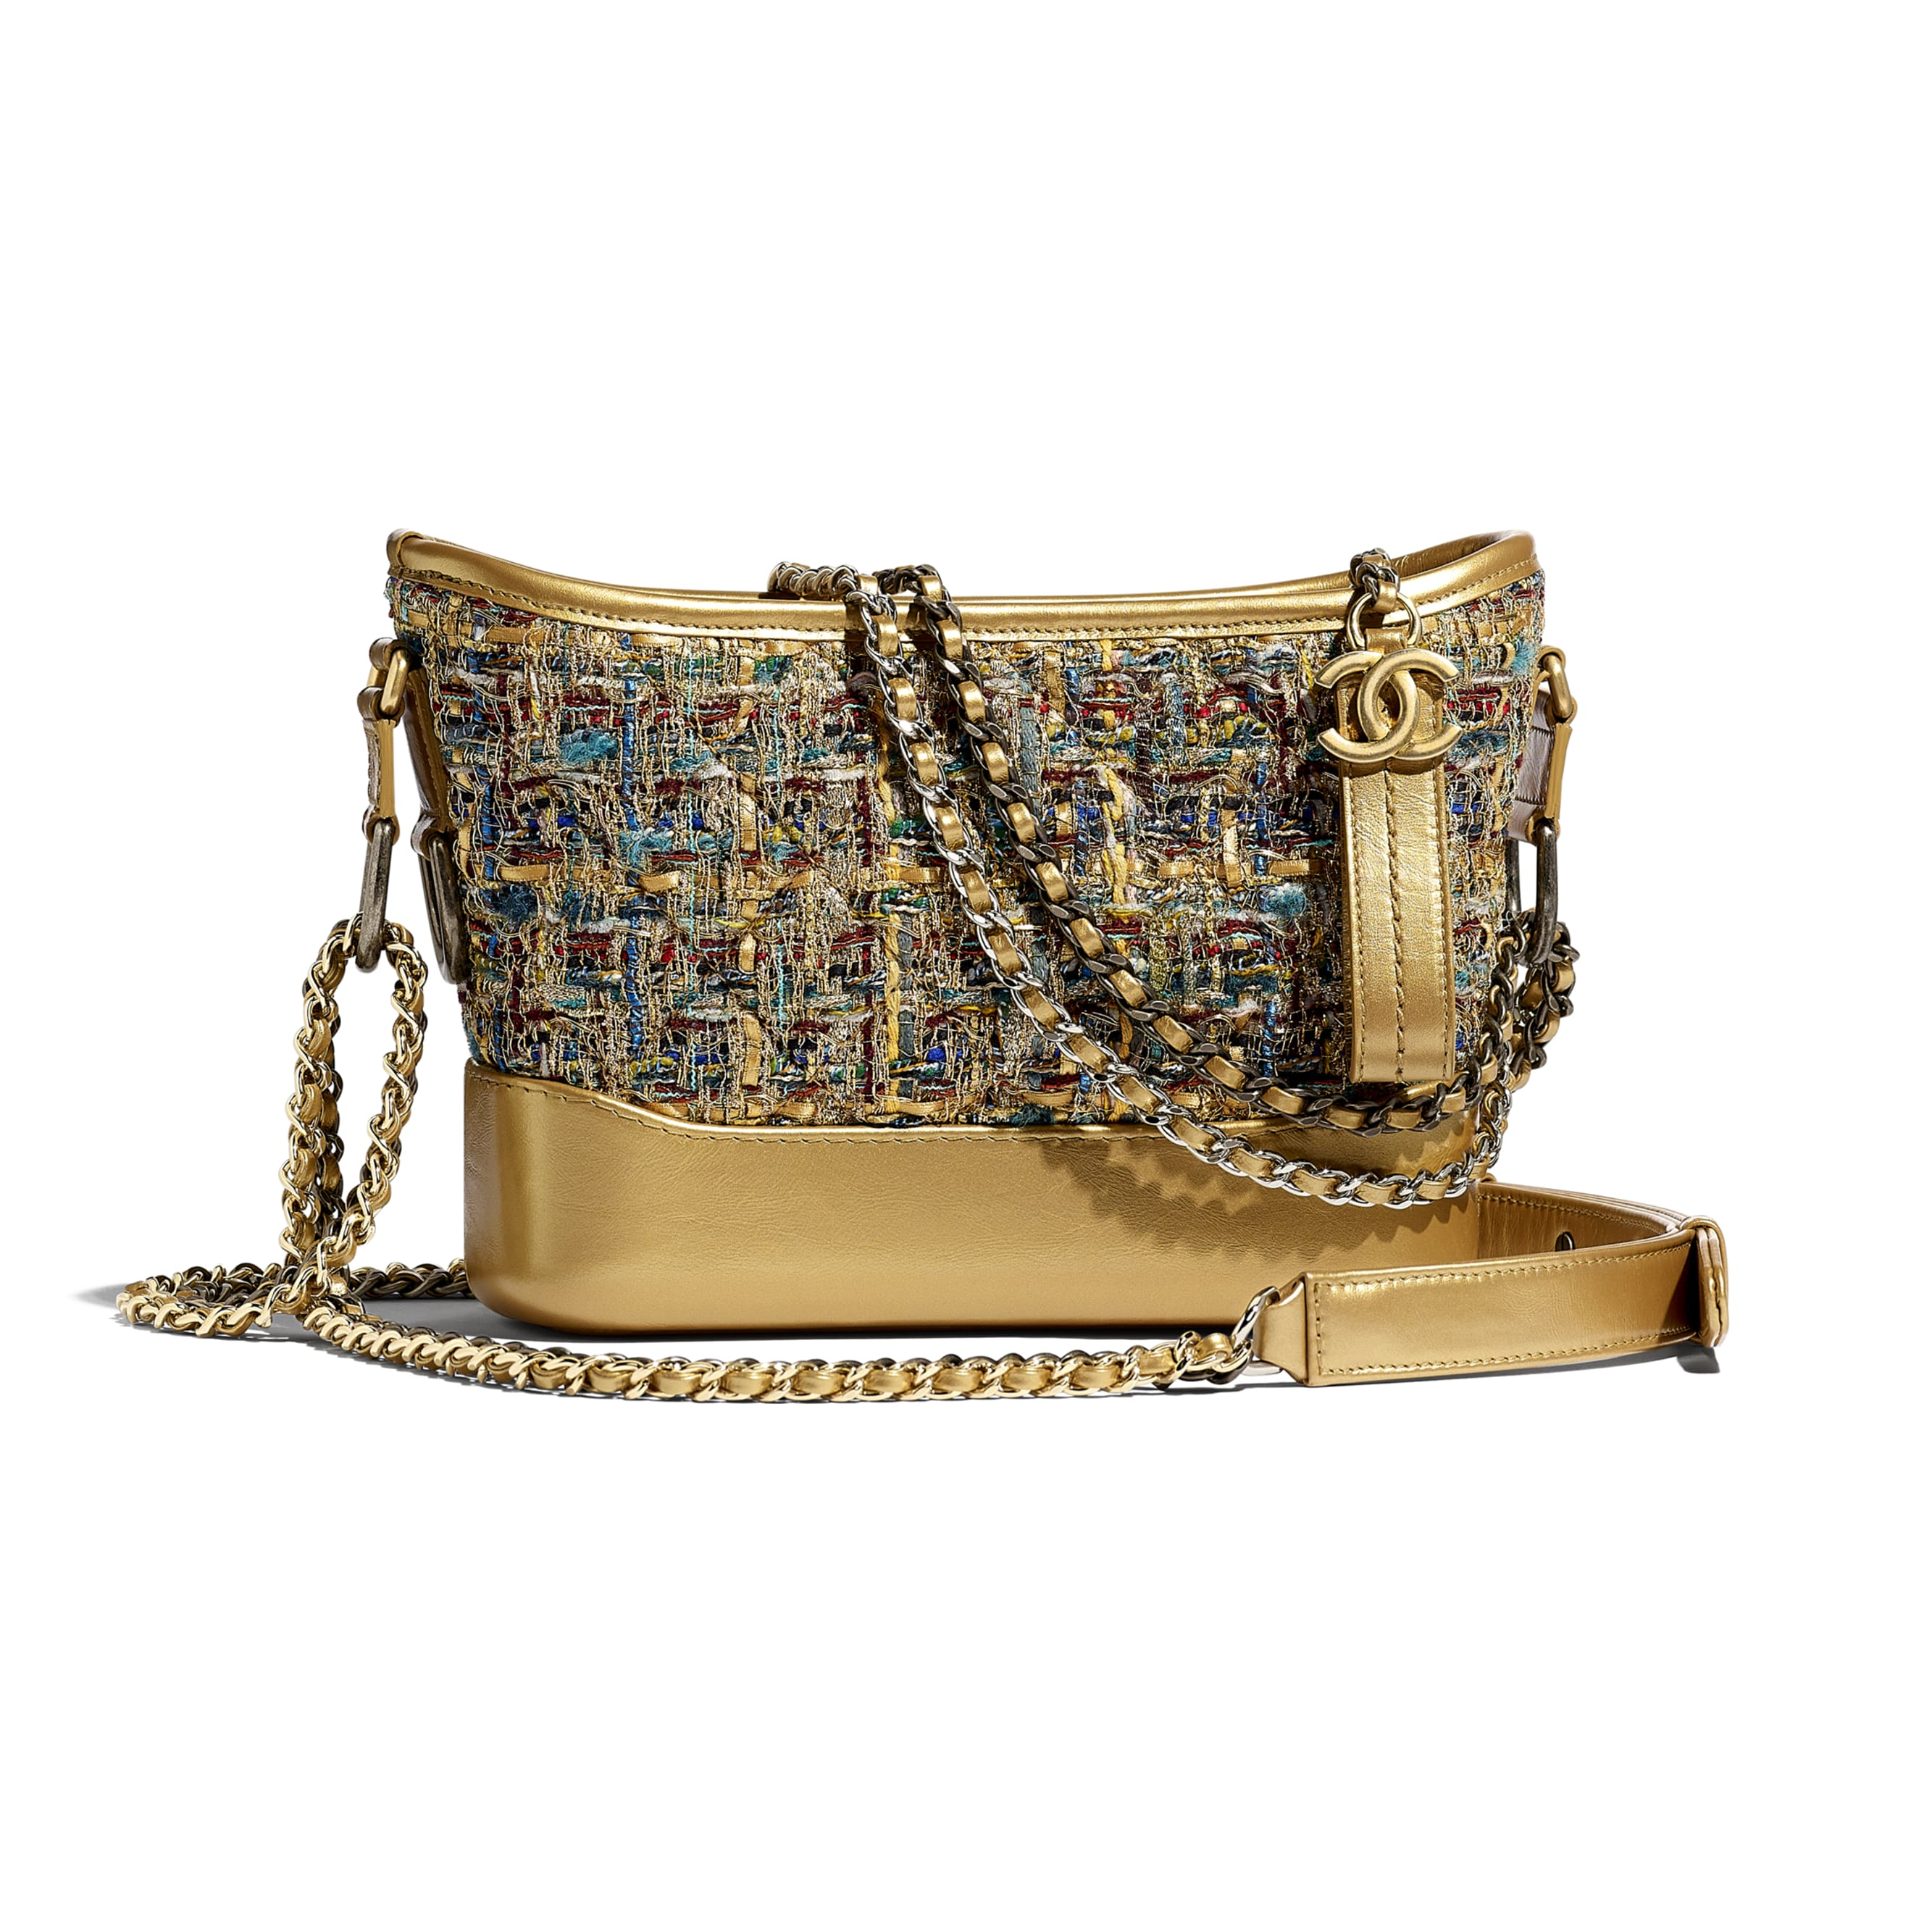 CHANEL'S GABRIELLE Small Hobo Bag - Gold, Blue & Green - Tweed, Calfskin, Gold-Tone & Silver-Tone Metal - Default view - see standard sized version